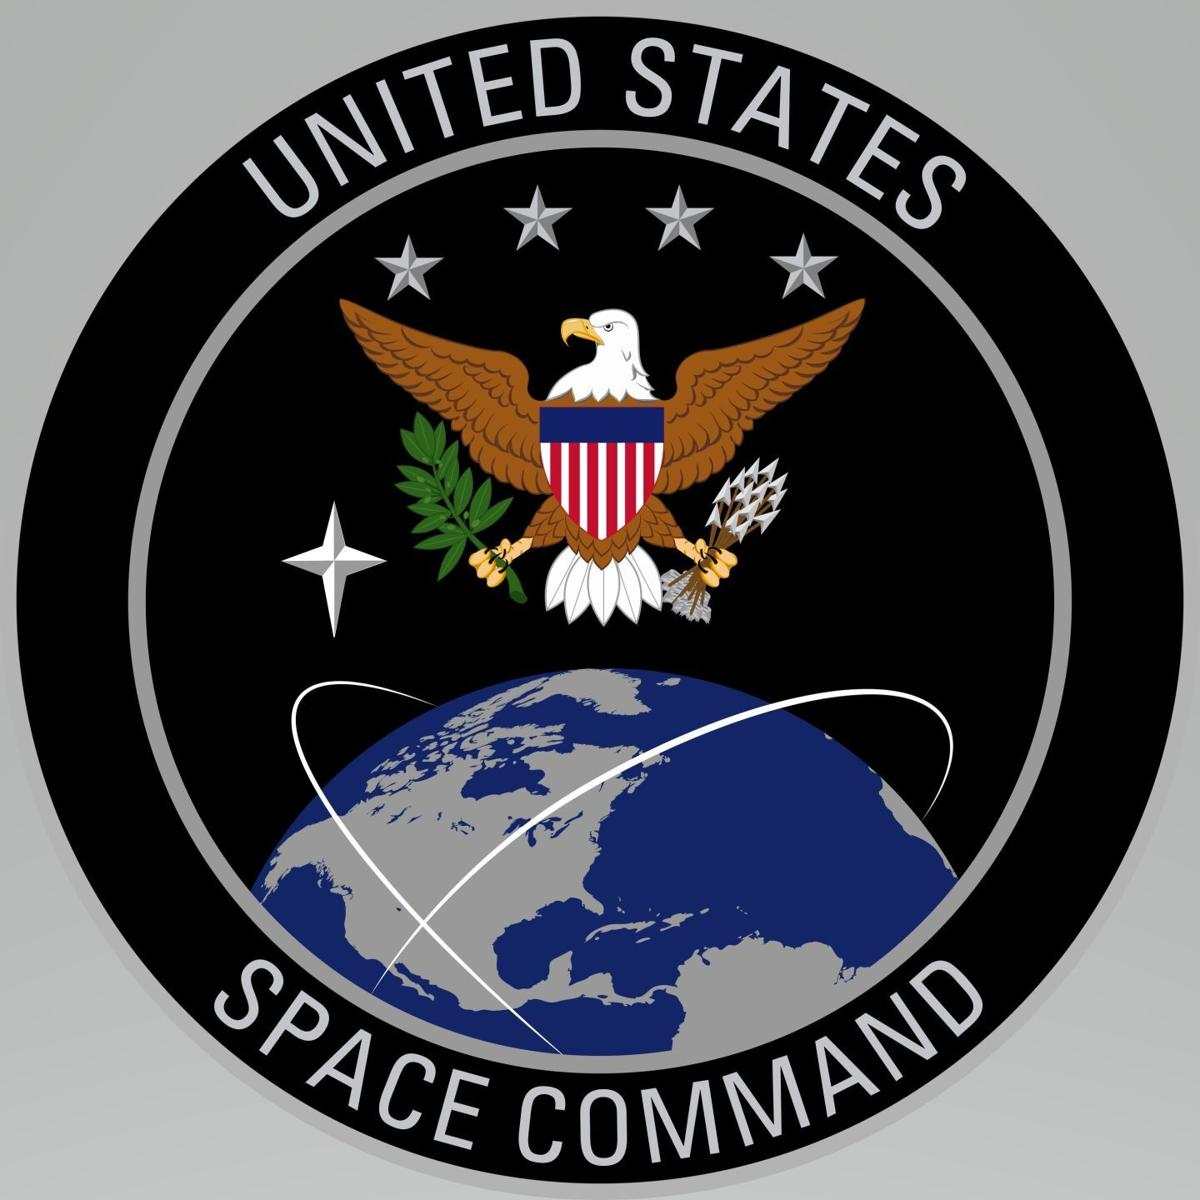 U.S. Space Command logo jpg version